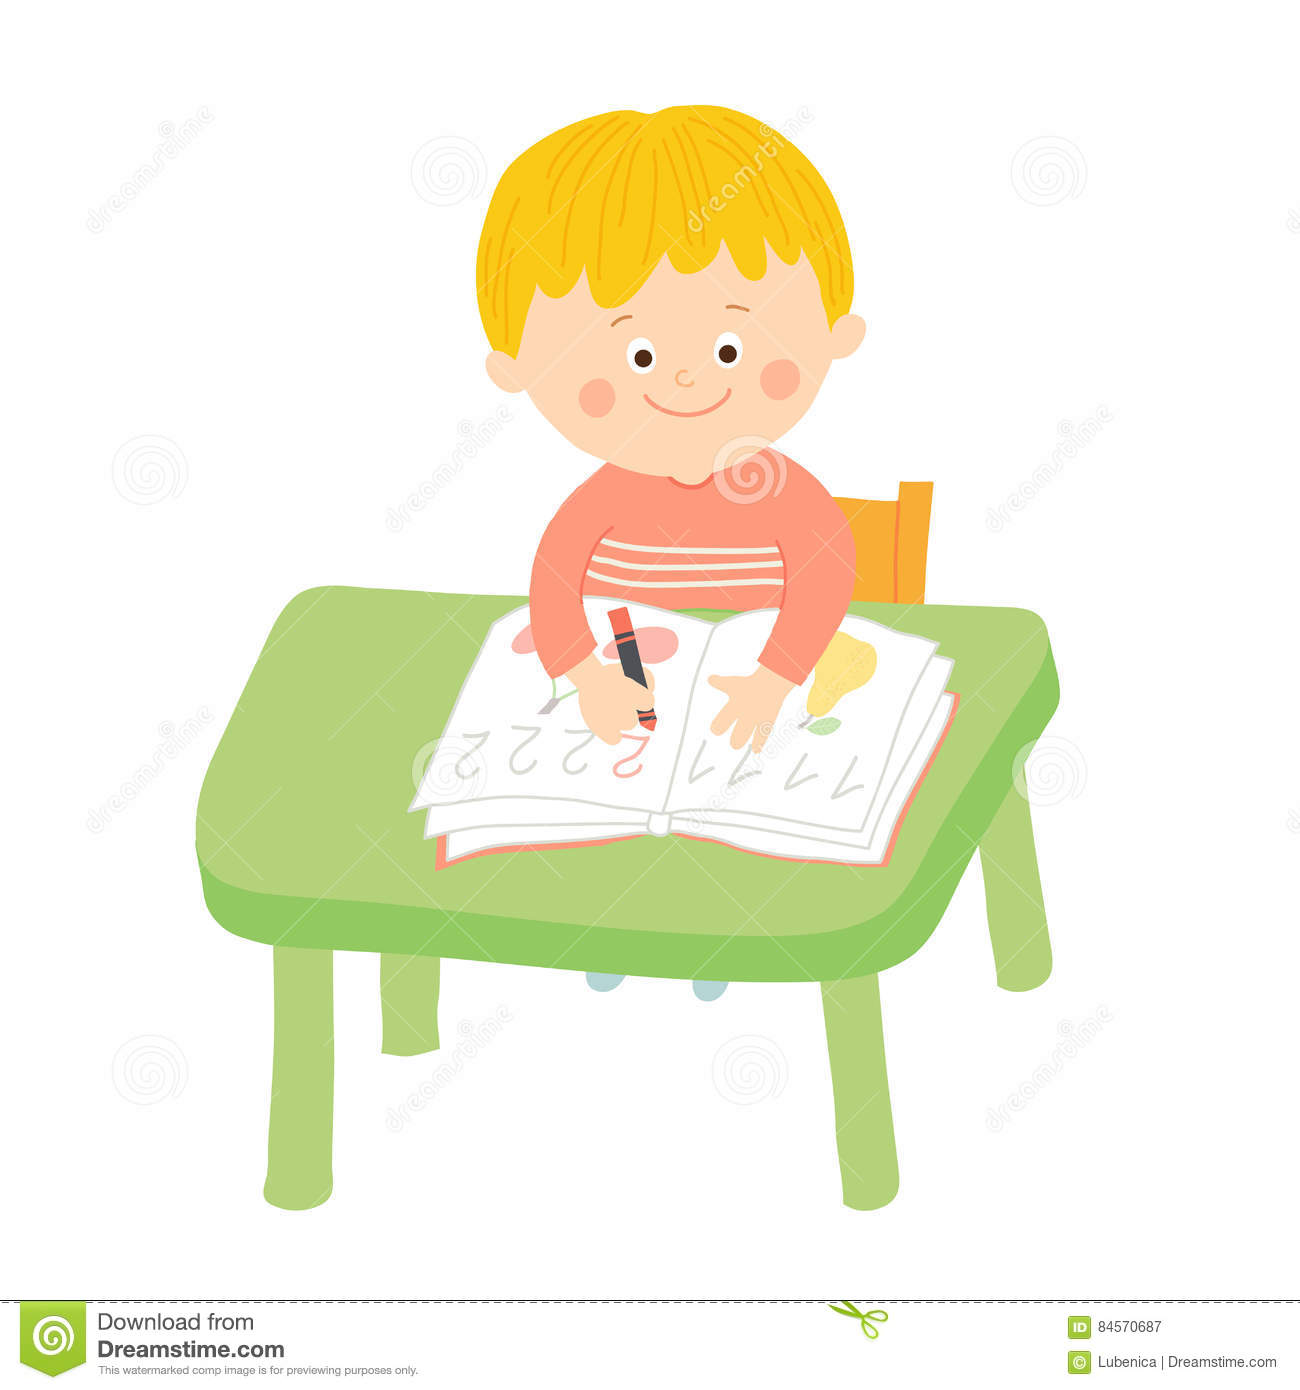 child writing at desk clipart - Clipground